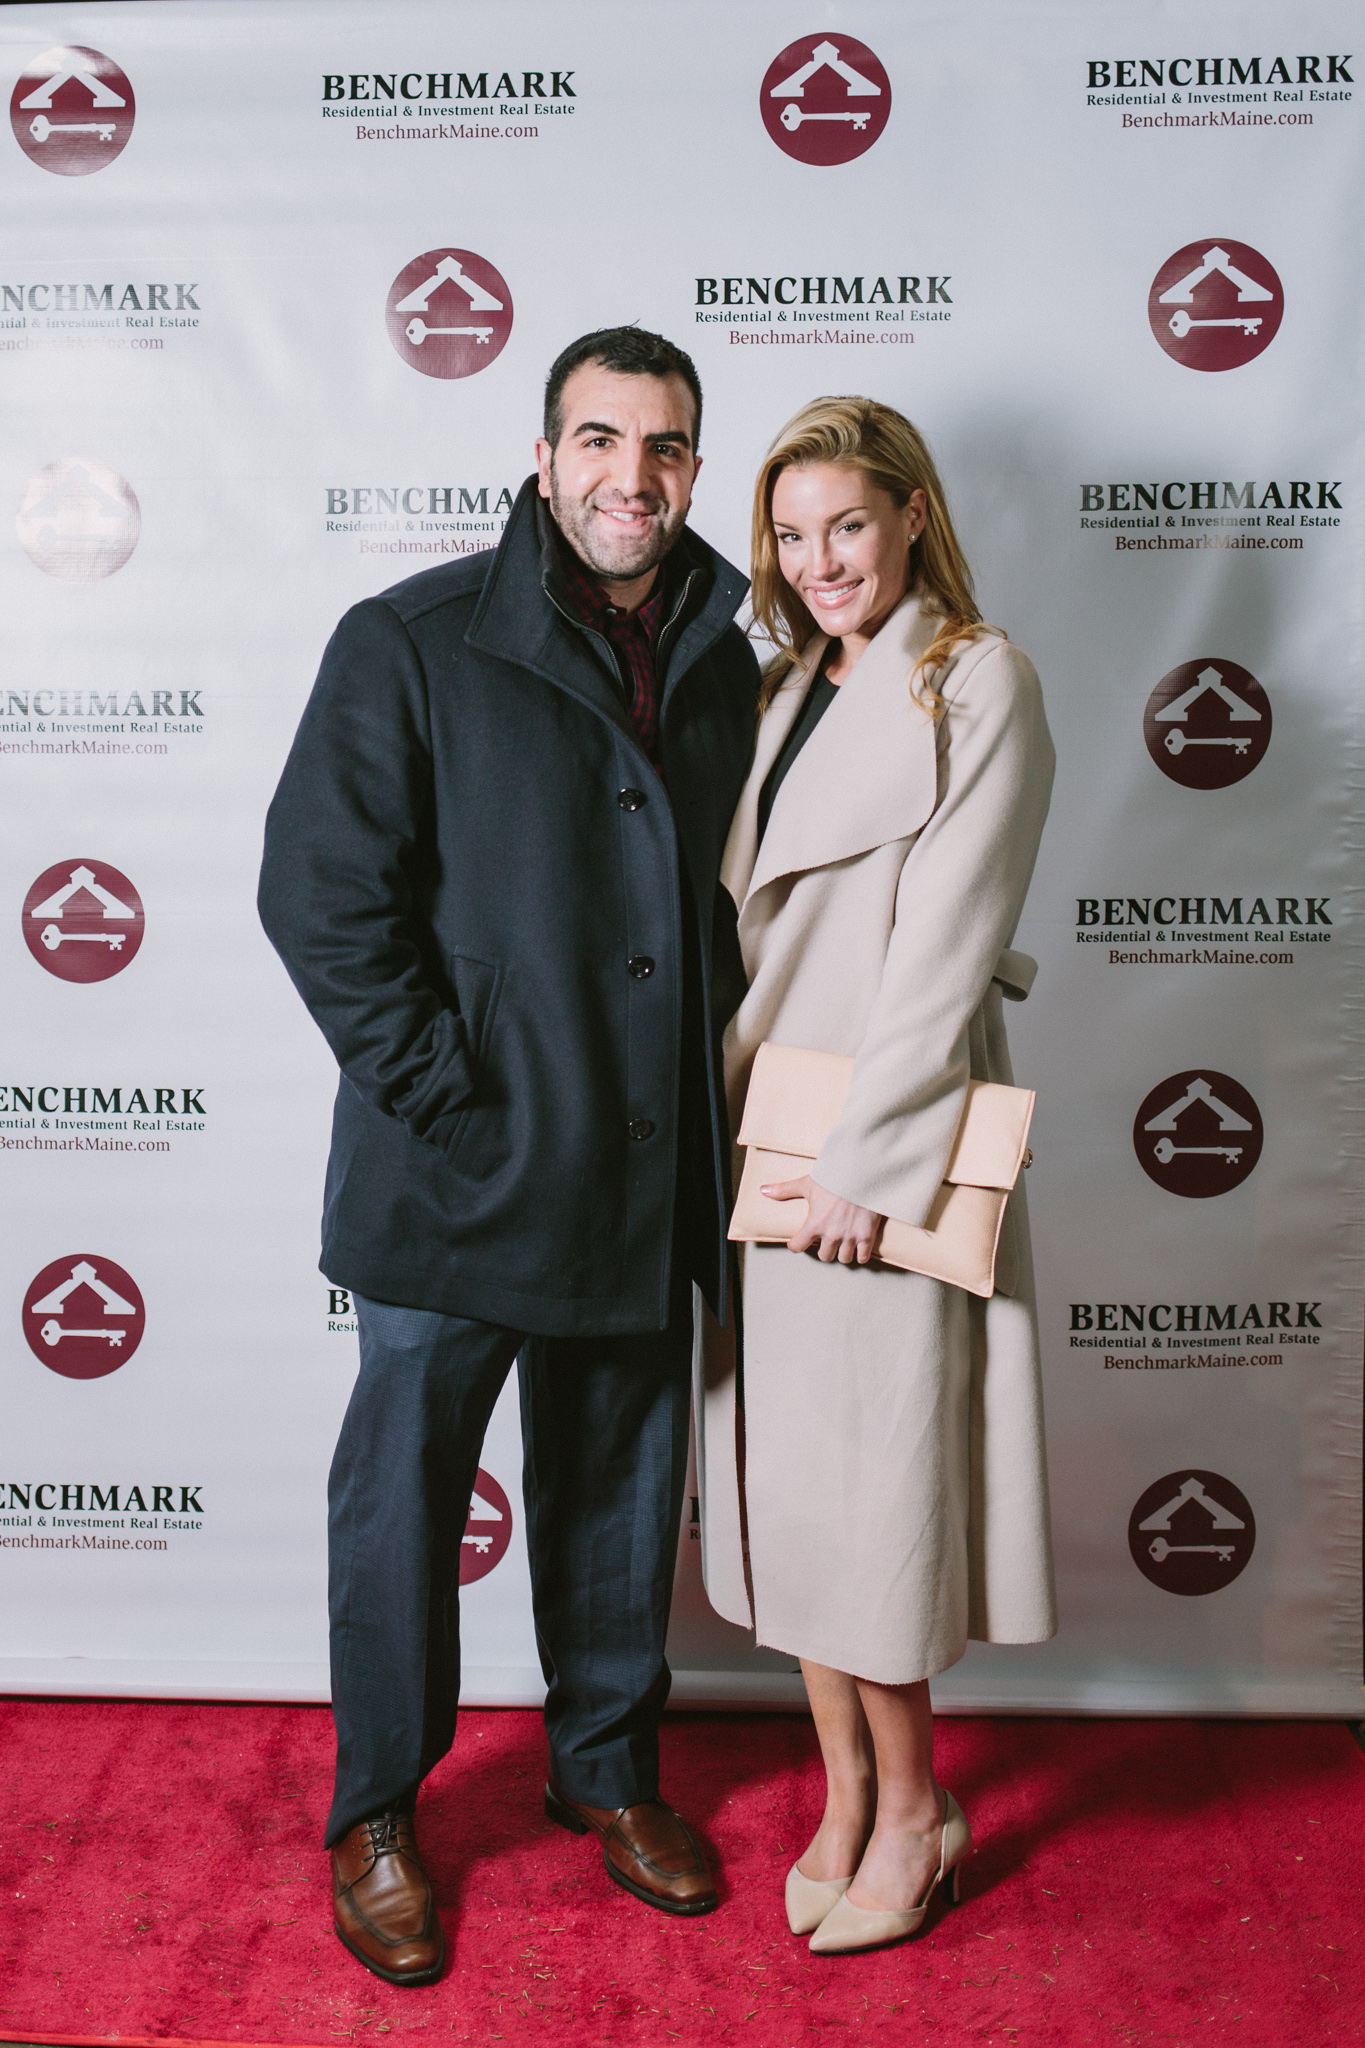 Benchmark_Holiday_Party_SR-019.jpg